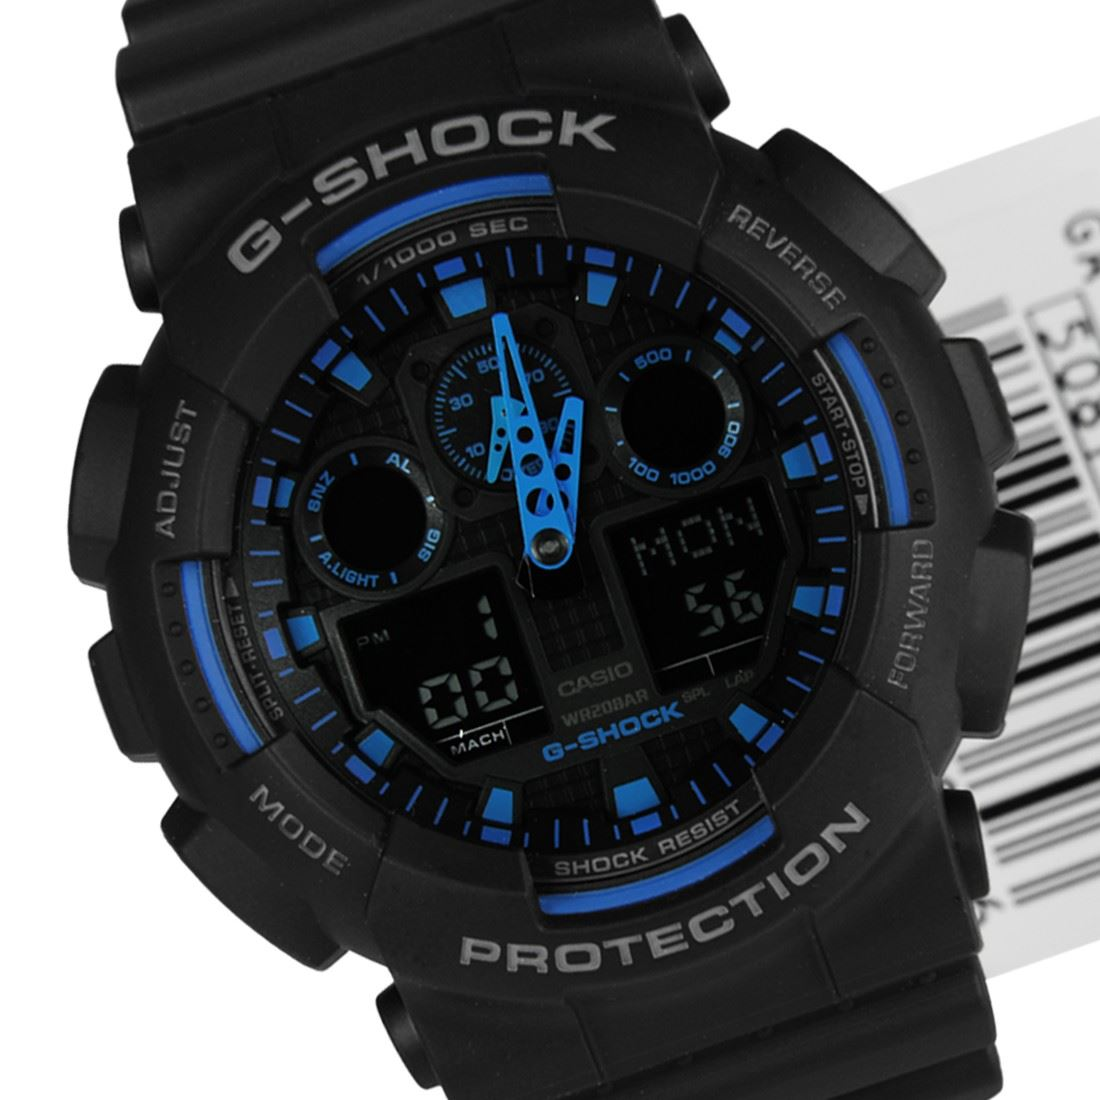 Casio g shock velocity indicator watch ga 100 1a1dr ga 100 1a2dr ga 100 1a4dr ebay for Watches g shock